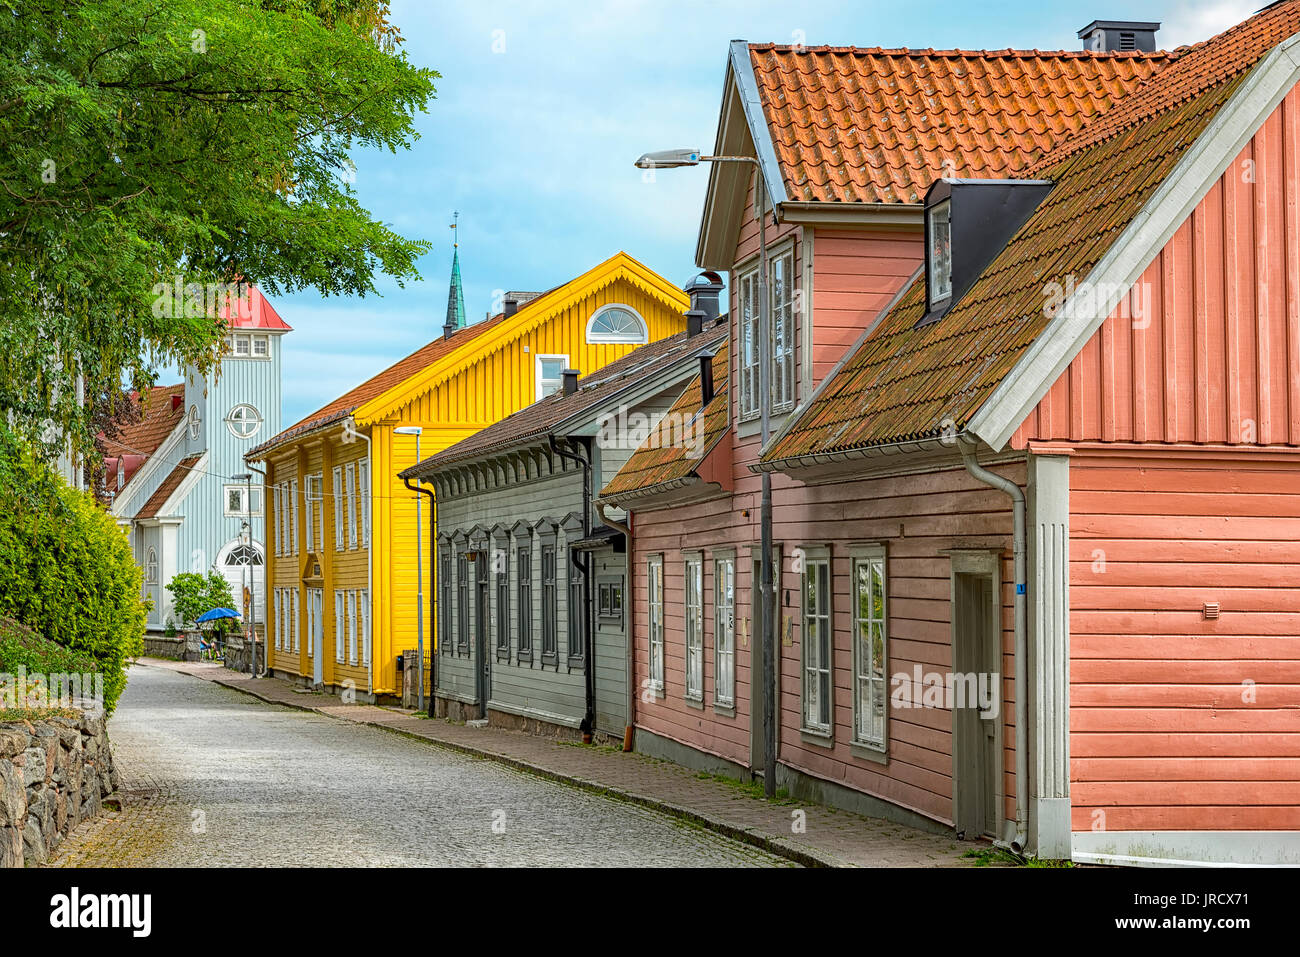 Street scene from the Swedish town of Kungalv. - Stock Image